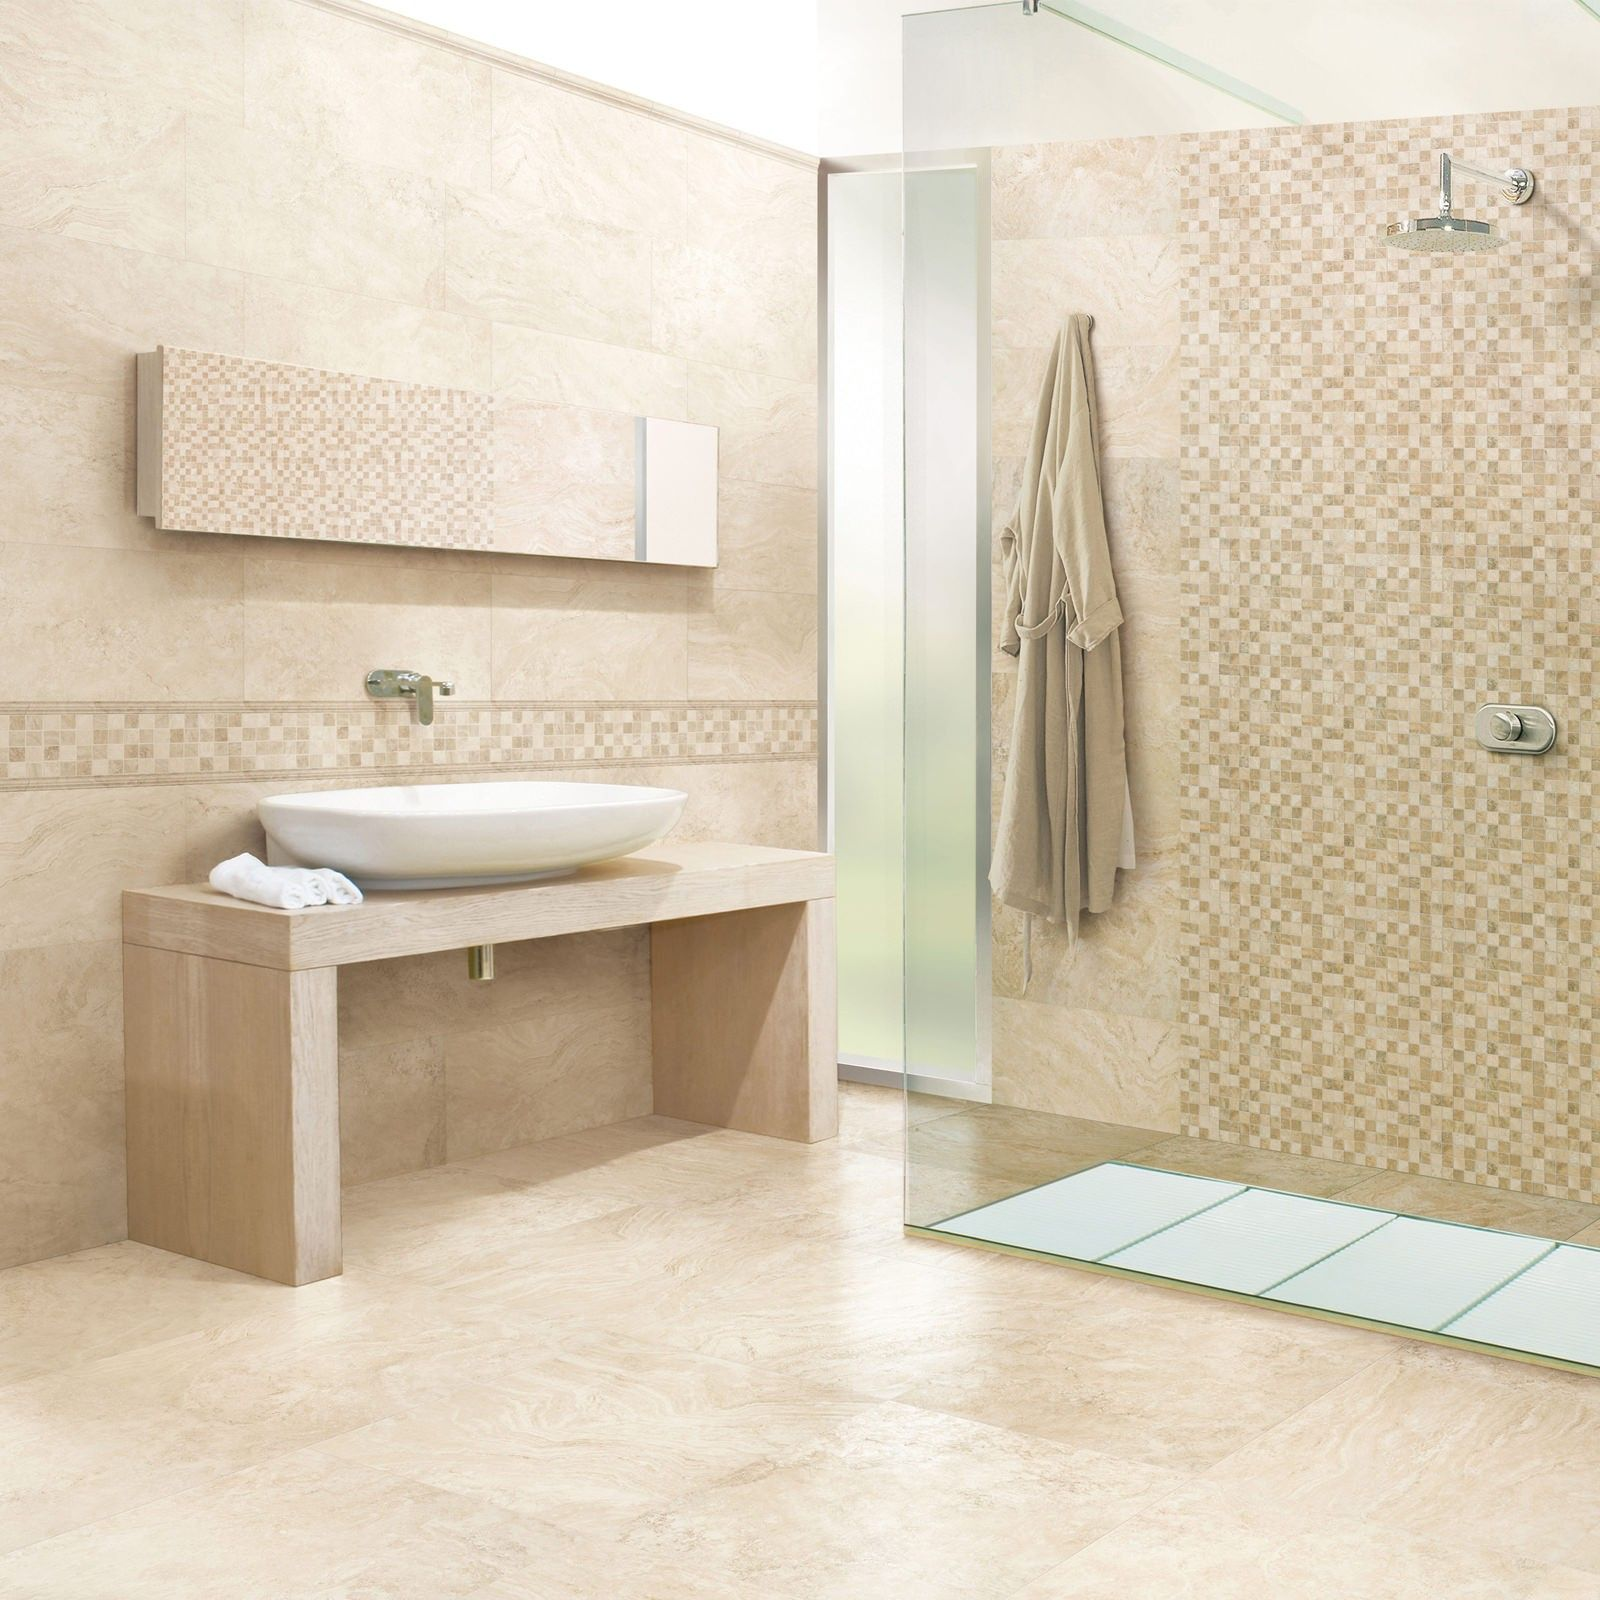 Wind Wall Tile (Travertine Effect) | Bathroom Ideas | Pinterest ...